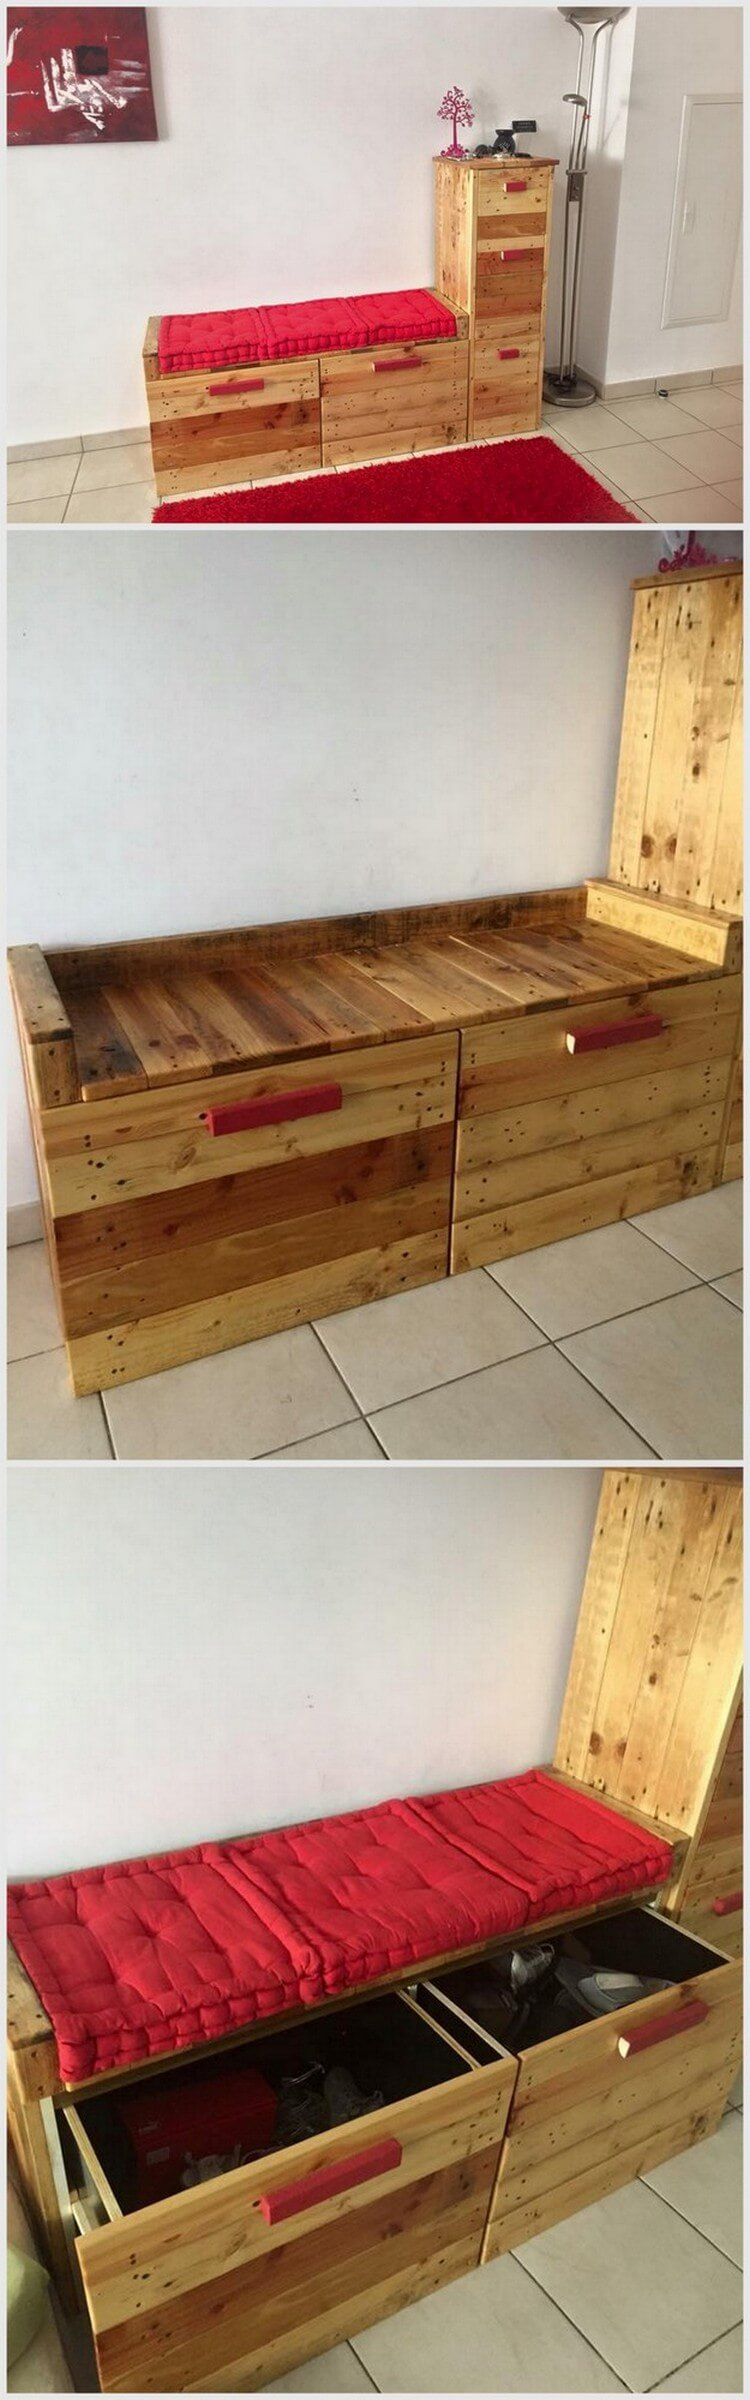 Cute Pallet Bed with Storage